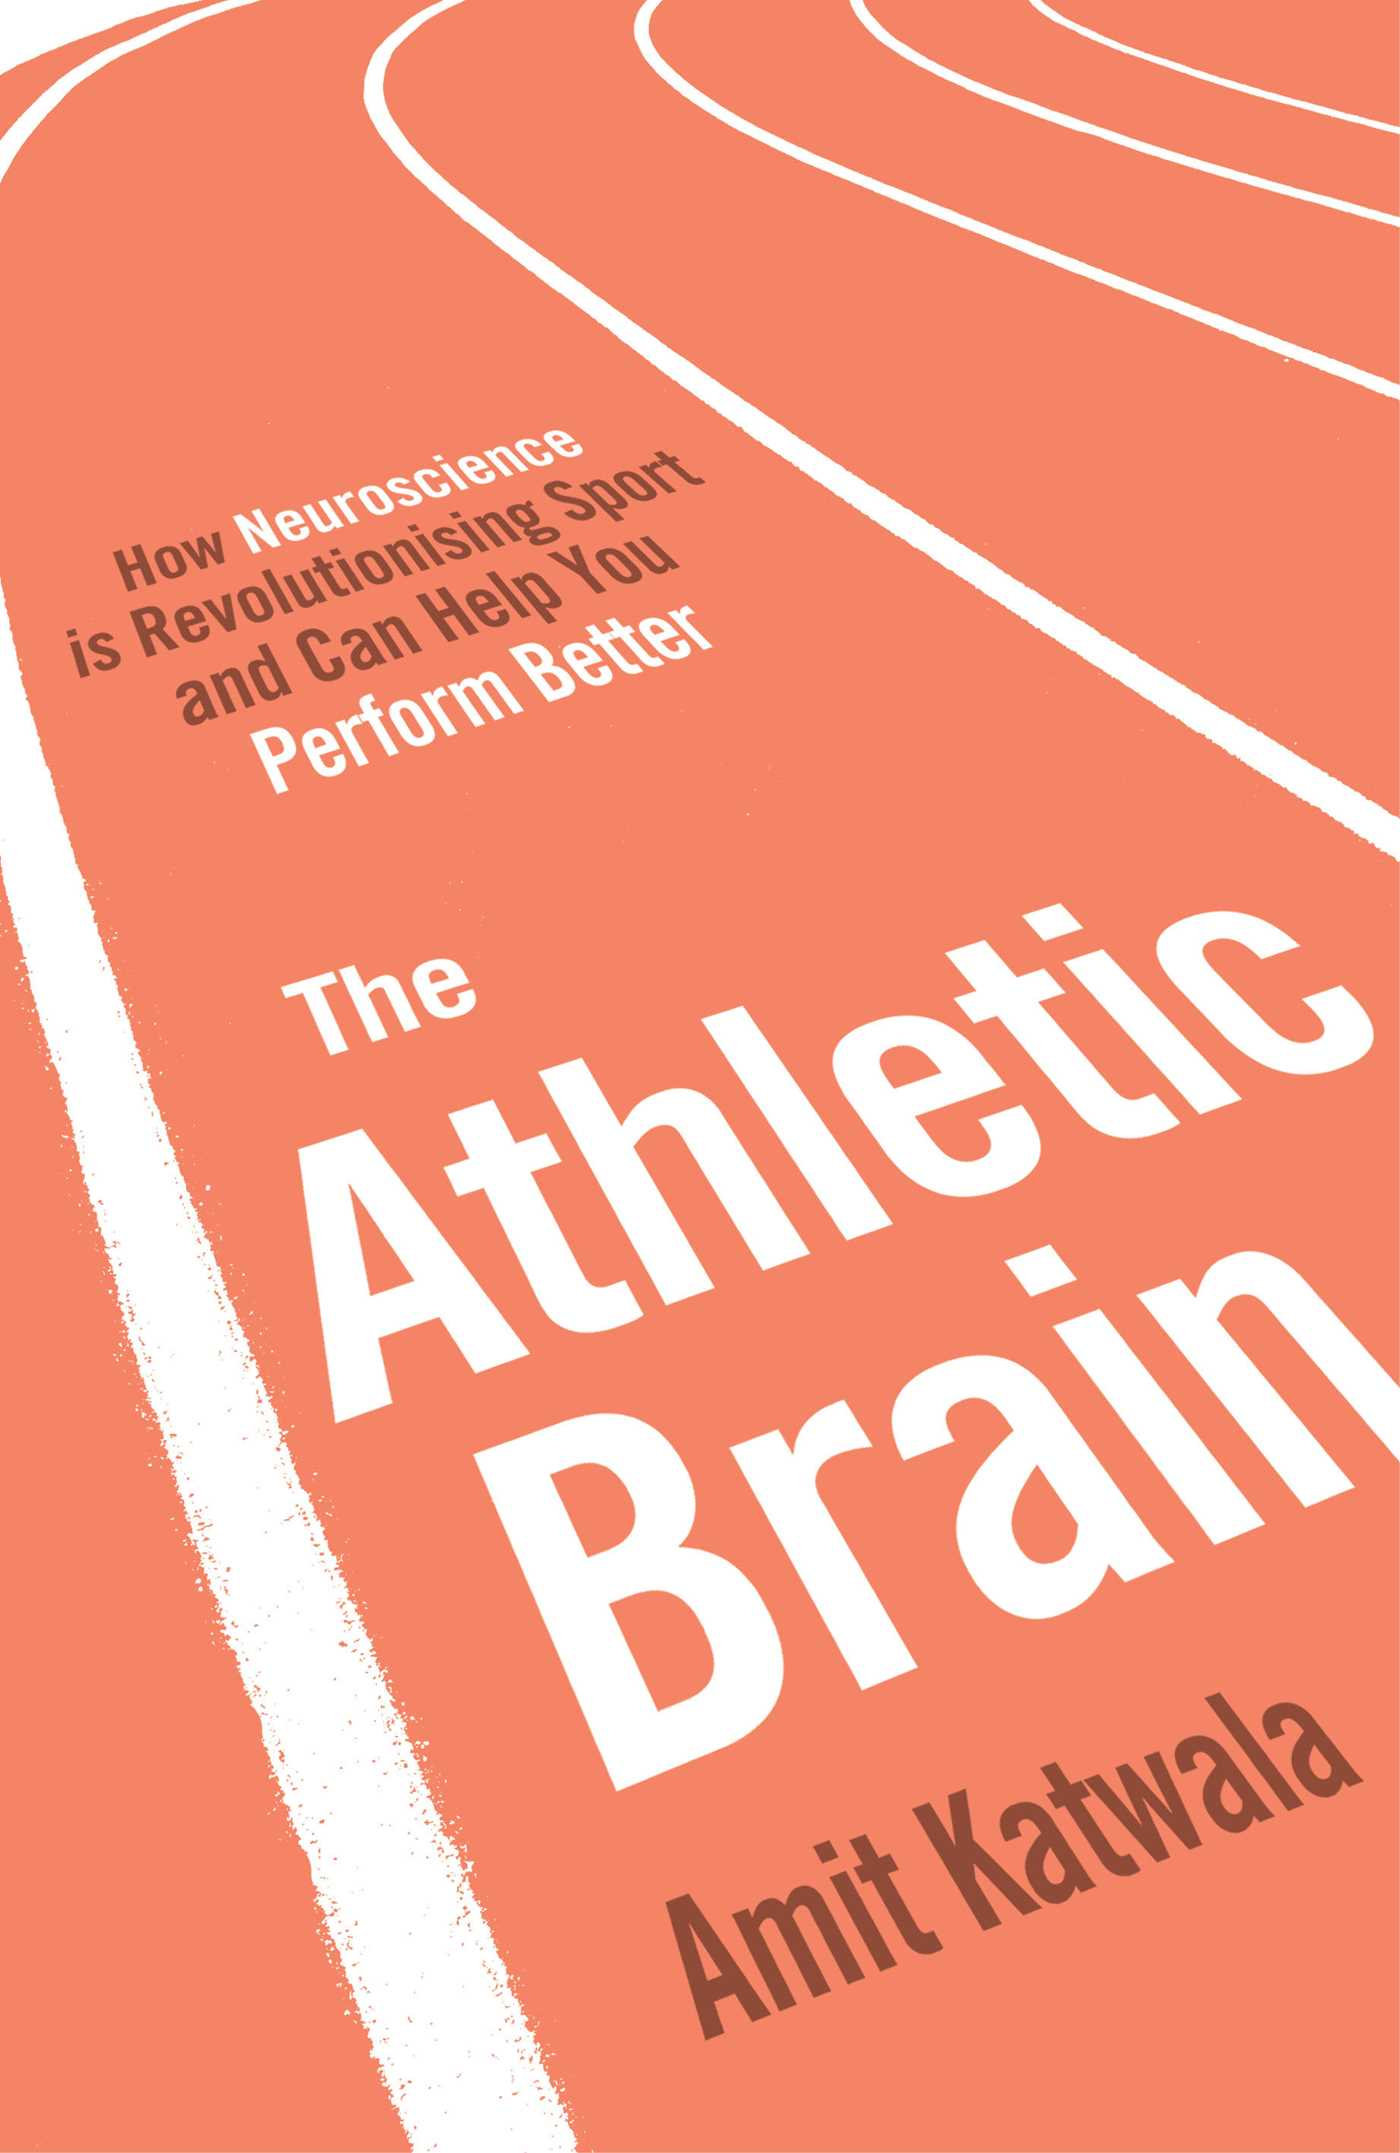 The athletic brain 9781471155925 hr